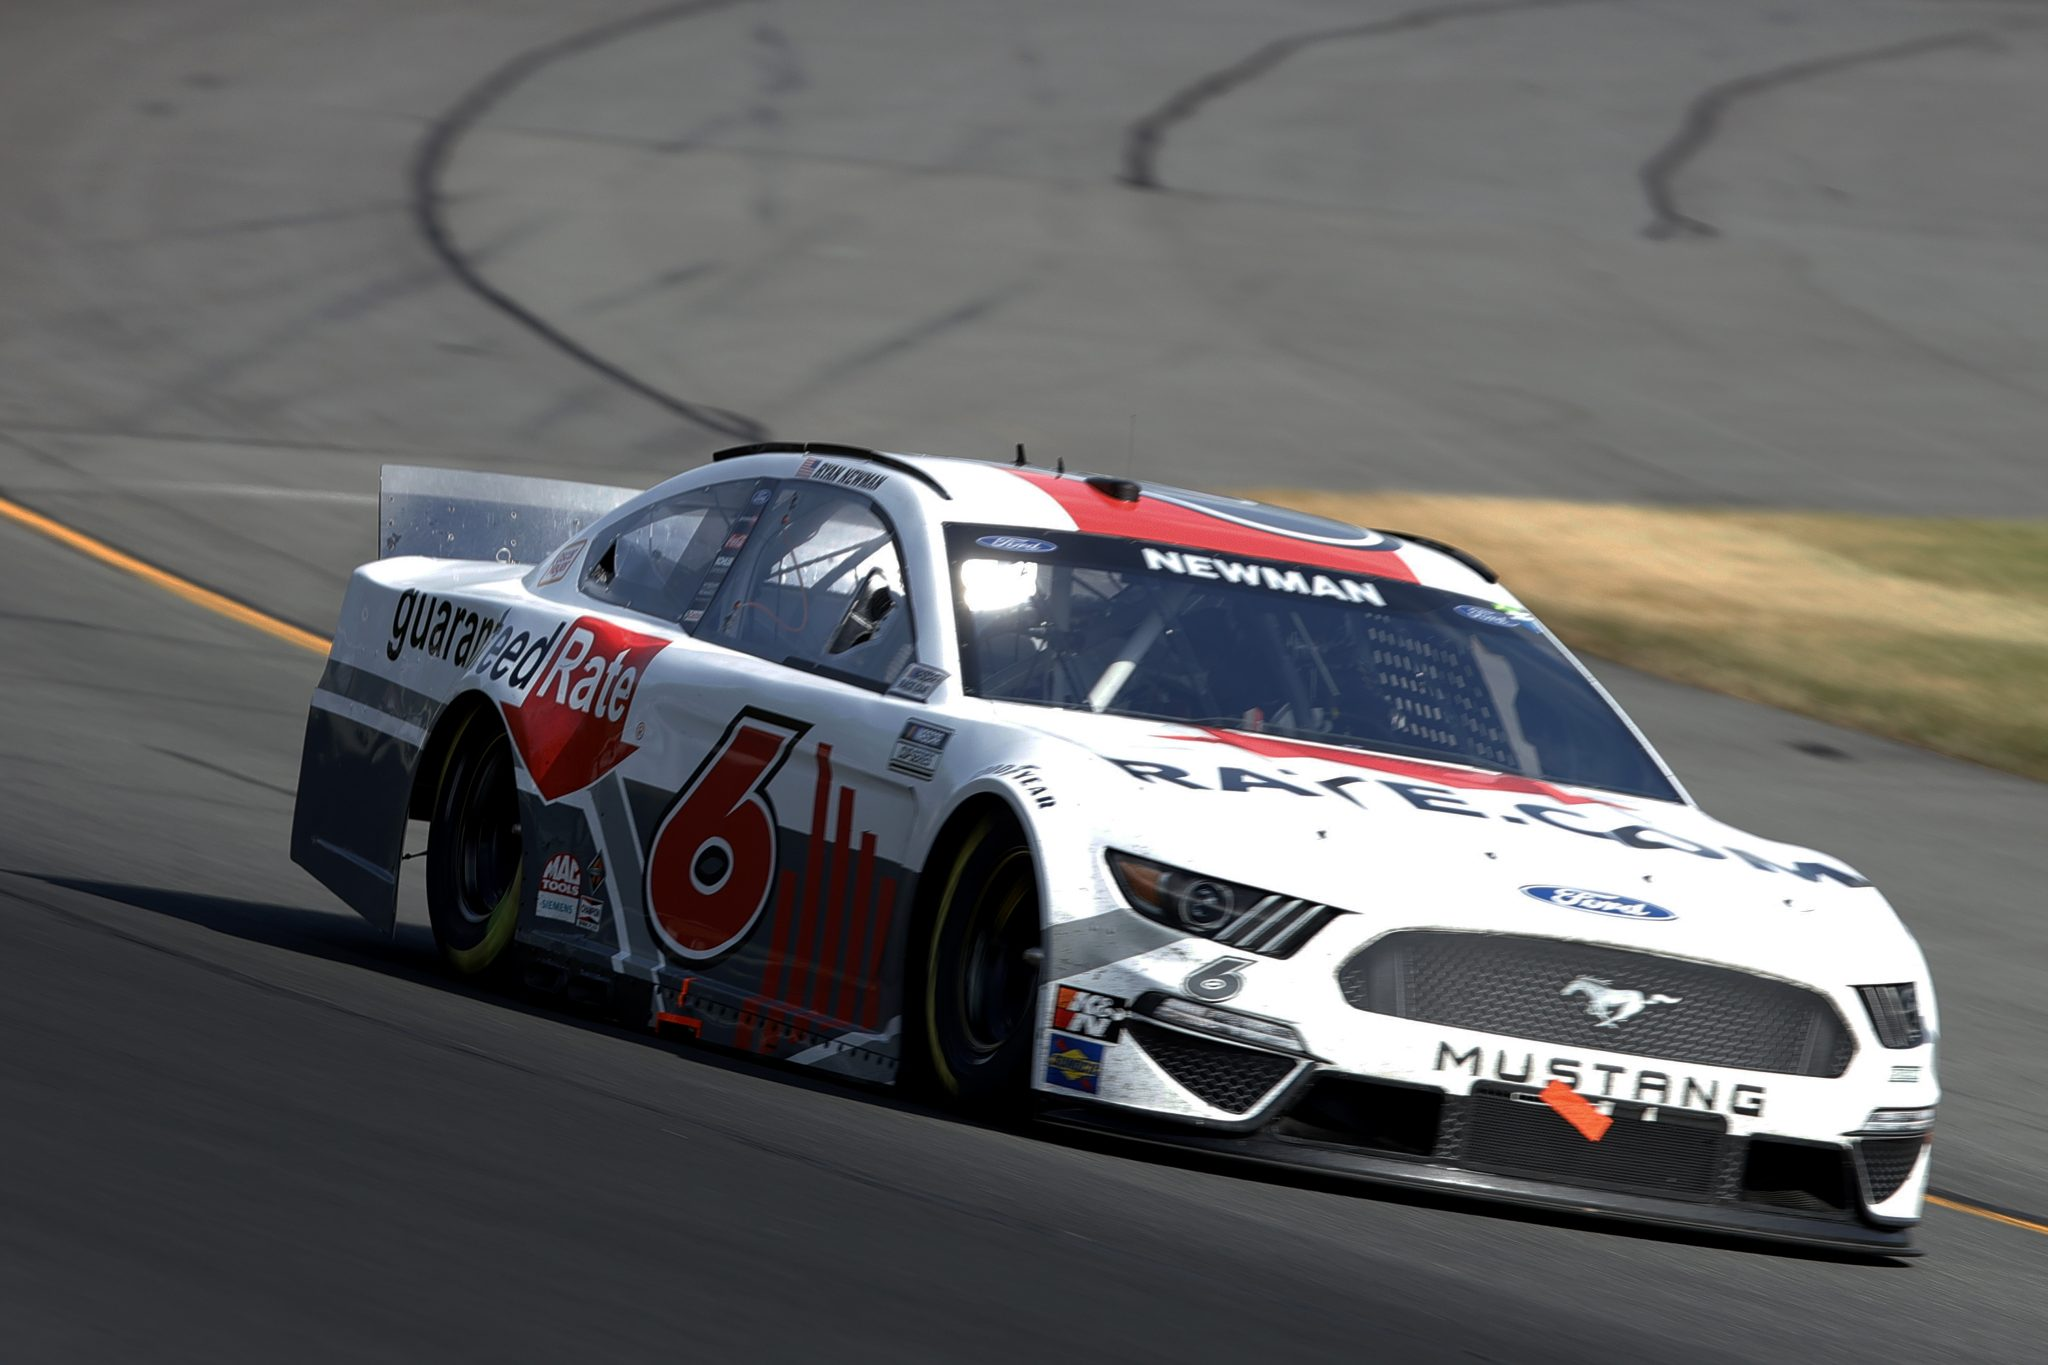 LONG POND, PENNSYLVANIA - JUNE 27: Ryan Newman, driver of the #6 Guaranteed Rate Ford, drives during the NASCAR Cup Series Explore the Pocono Mountains 350 at Pocono Raceway on June 27, 2021 in Long Pond, Pennsylvania. (Photo by Tim Nwachukwu/Getty Images) | Getty Images